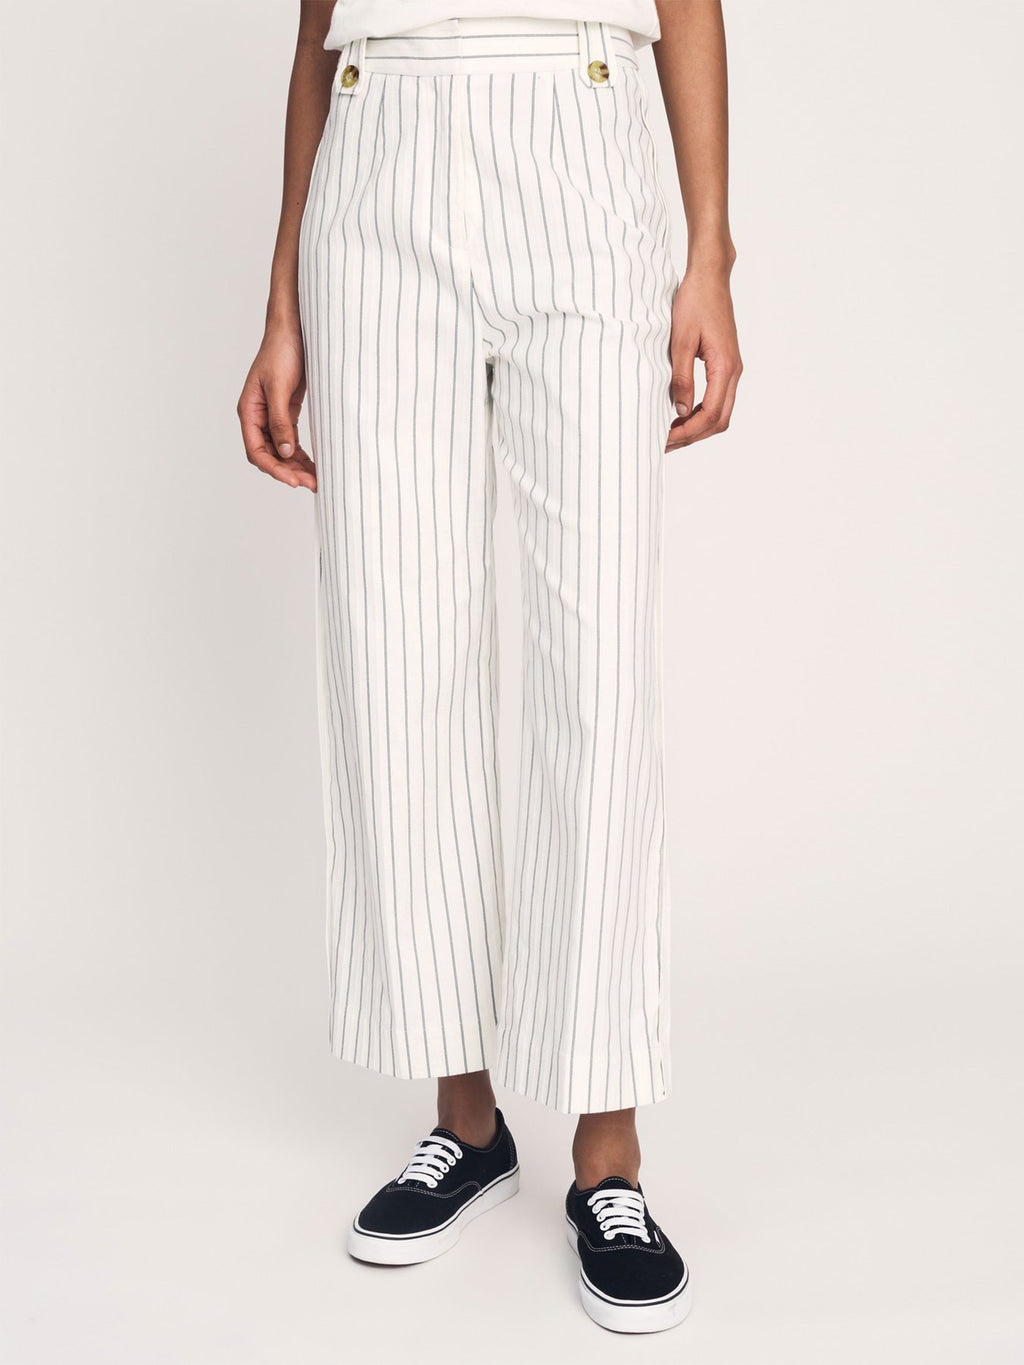 Derek Lam 10 Crosby Jerry High Waist Trouser